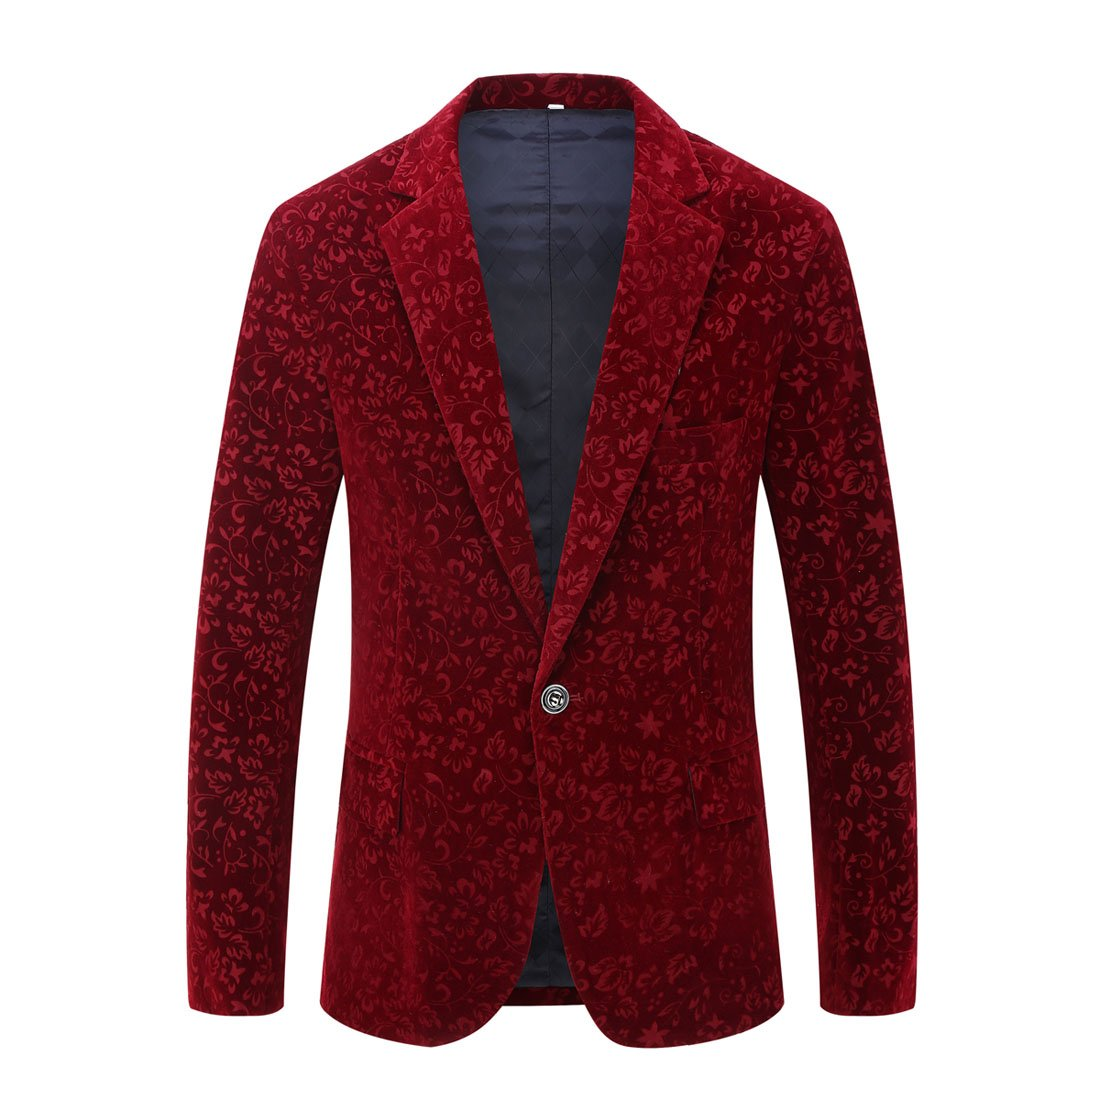 CARFFIV Mens Fashion Velvet Blazer Suit Jacket (Flower Velvet, Tag L/US 40R)